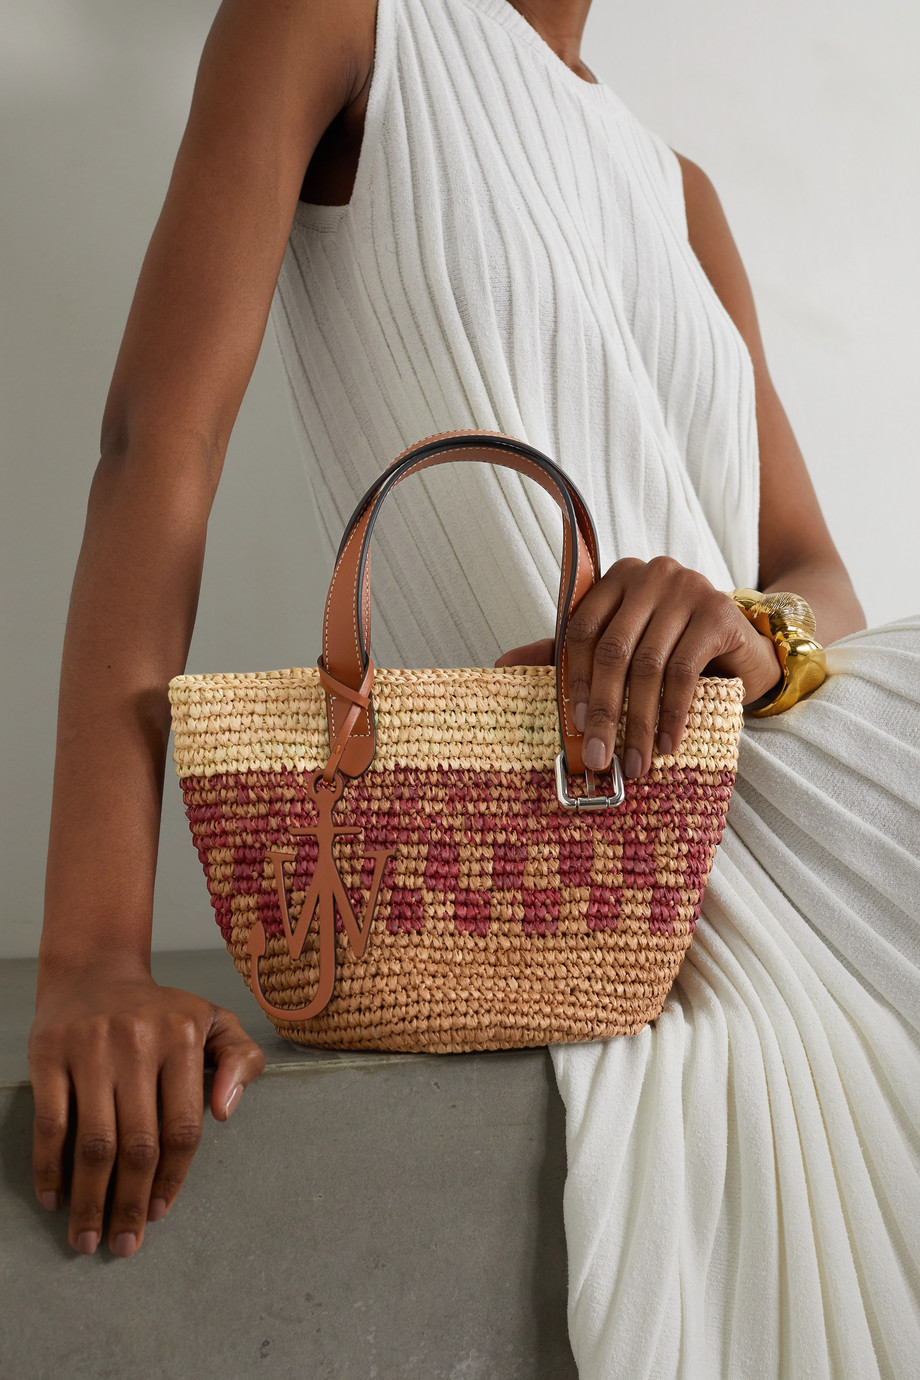 JW Anderson Mini leather-trimmed woven raffia tote